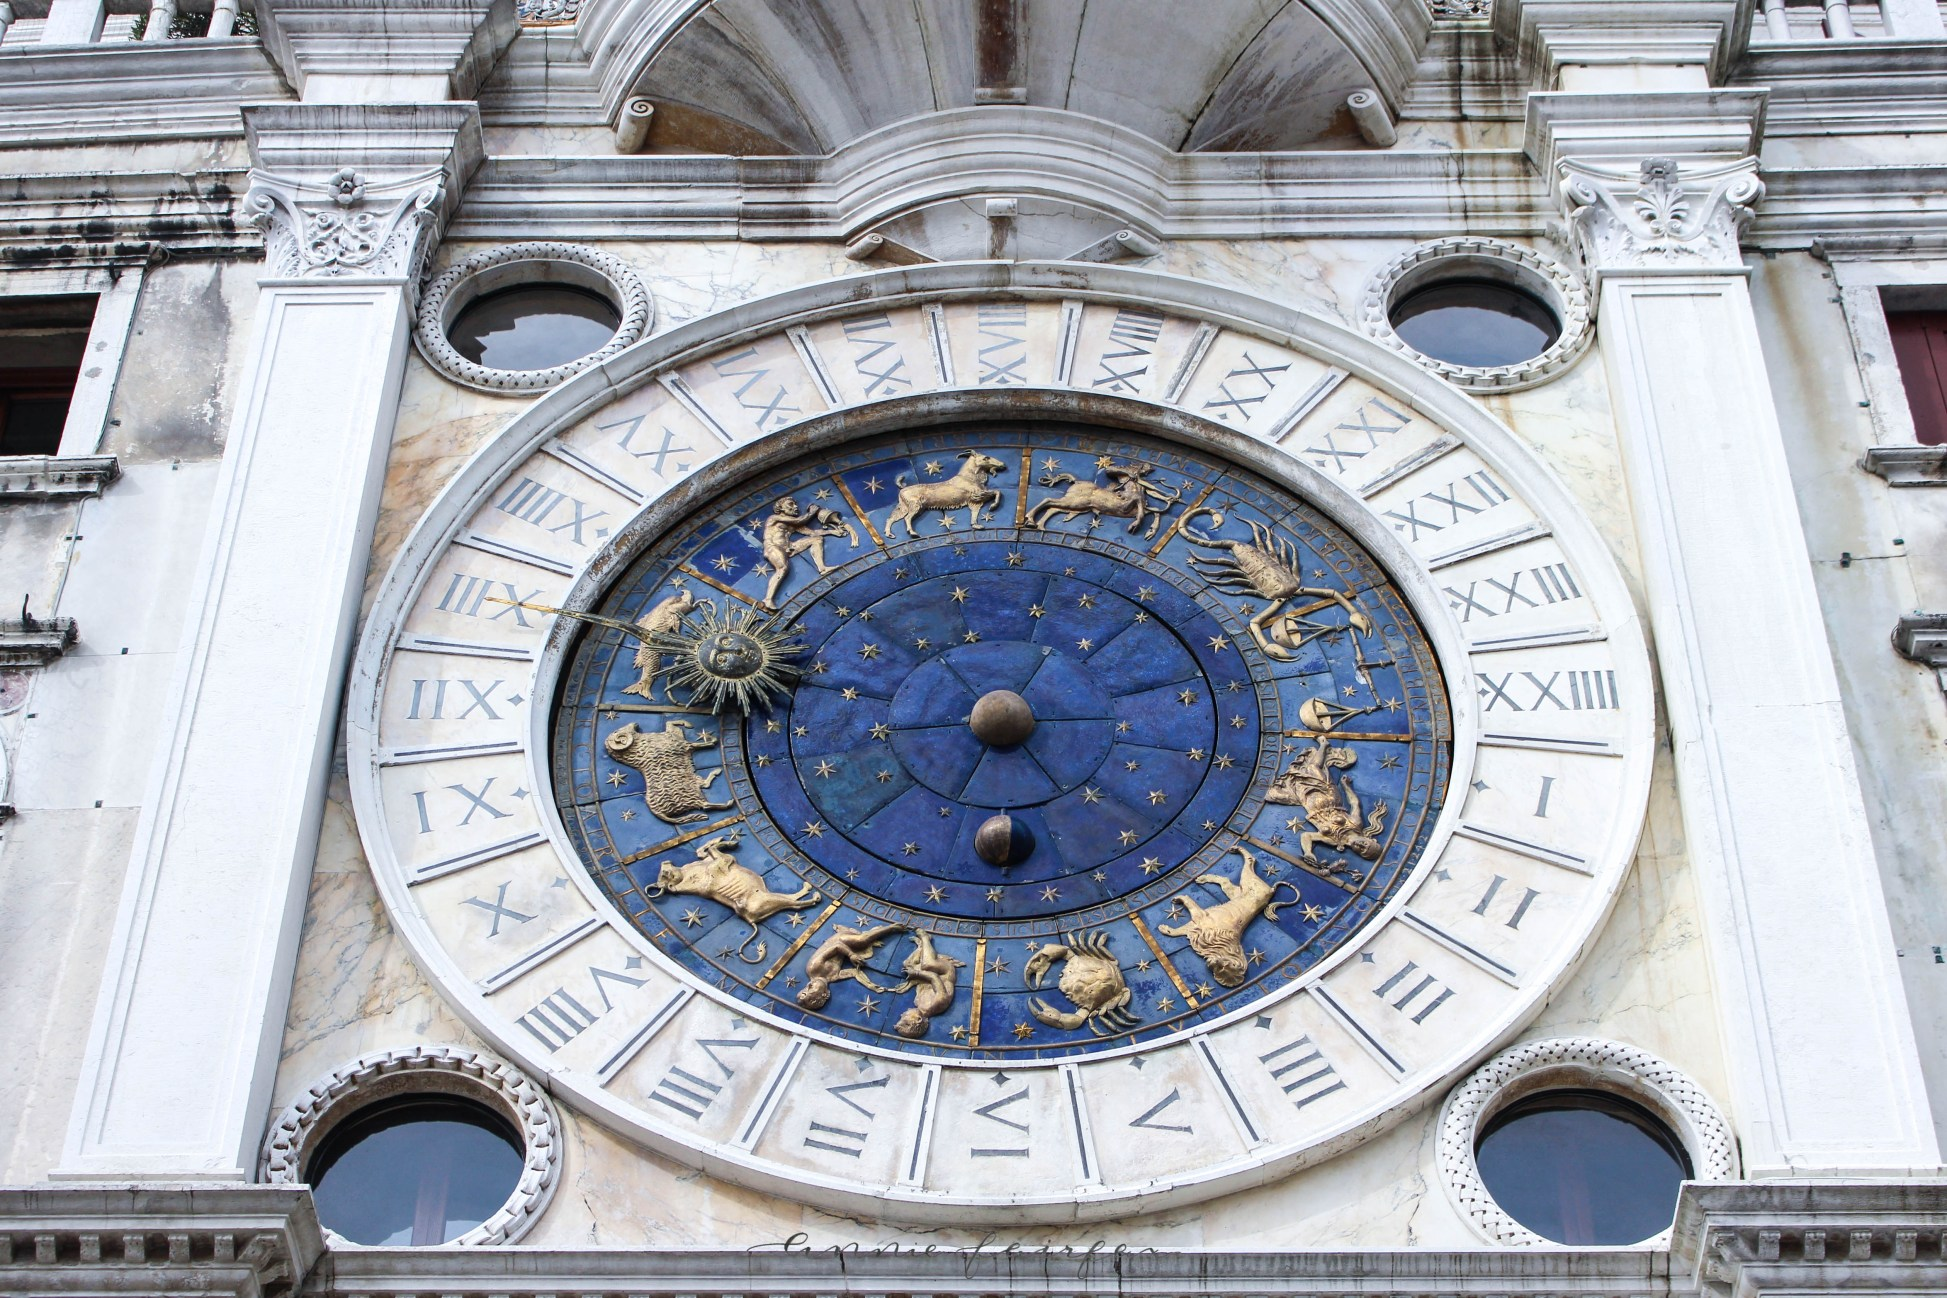 Lapis Lazuli Zodiac Clock Saint Mark's Basilica Venice Italy Catholic Church Oppulent Gold